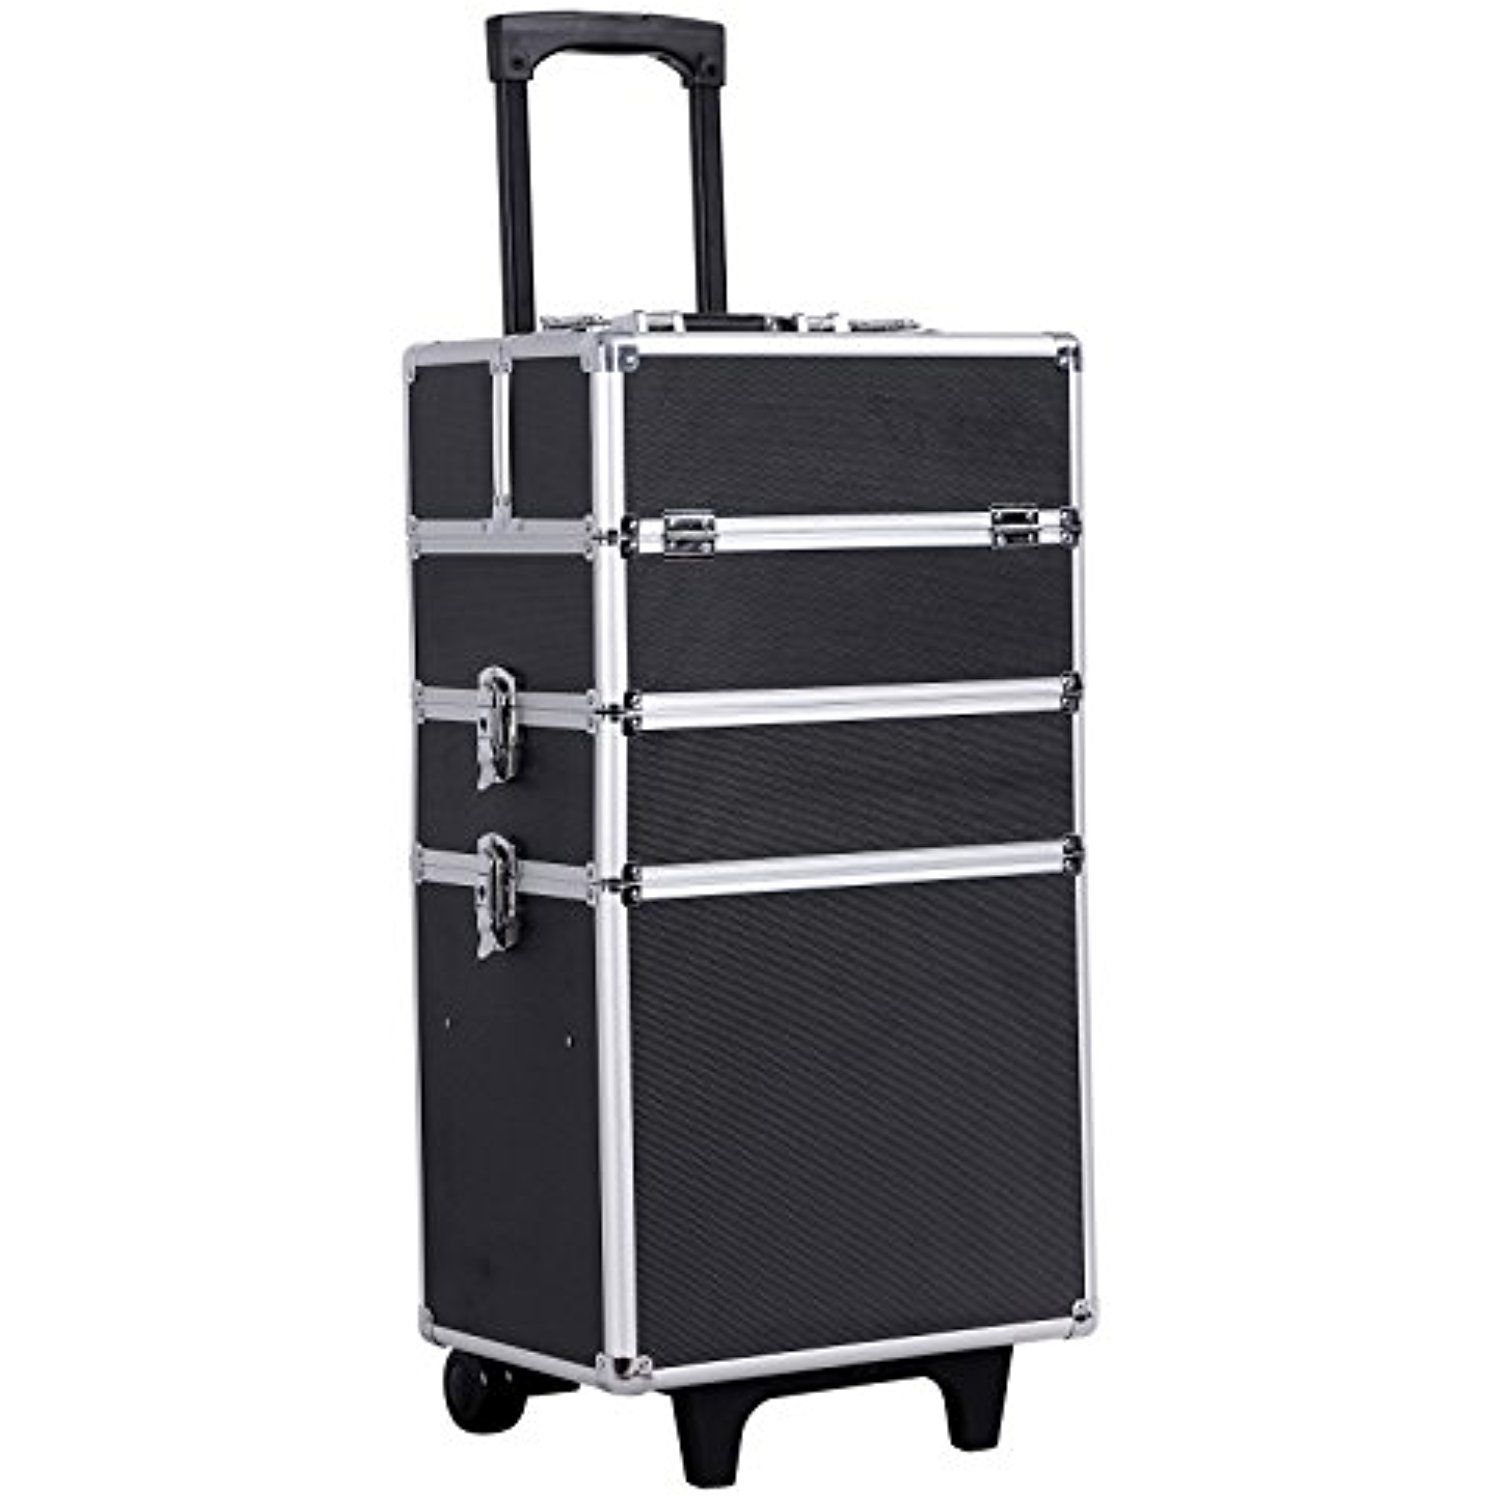 SONGMICS 4in1 Rolling Makeup Train Case with wheels